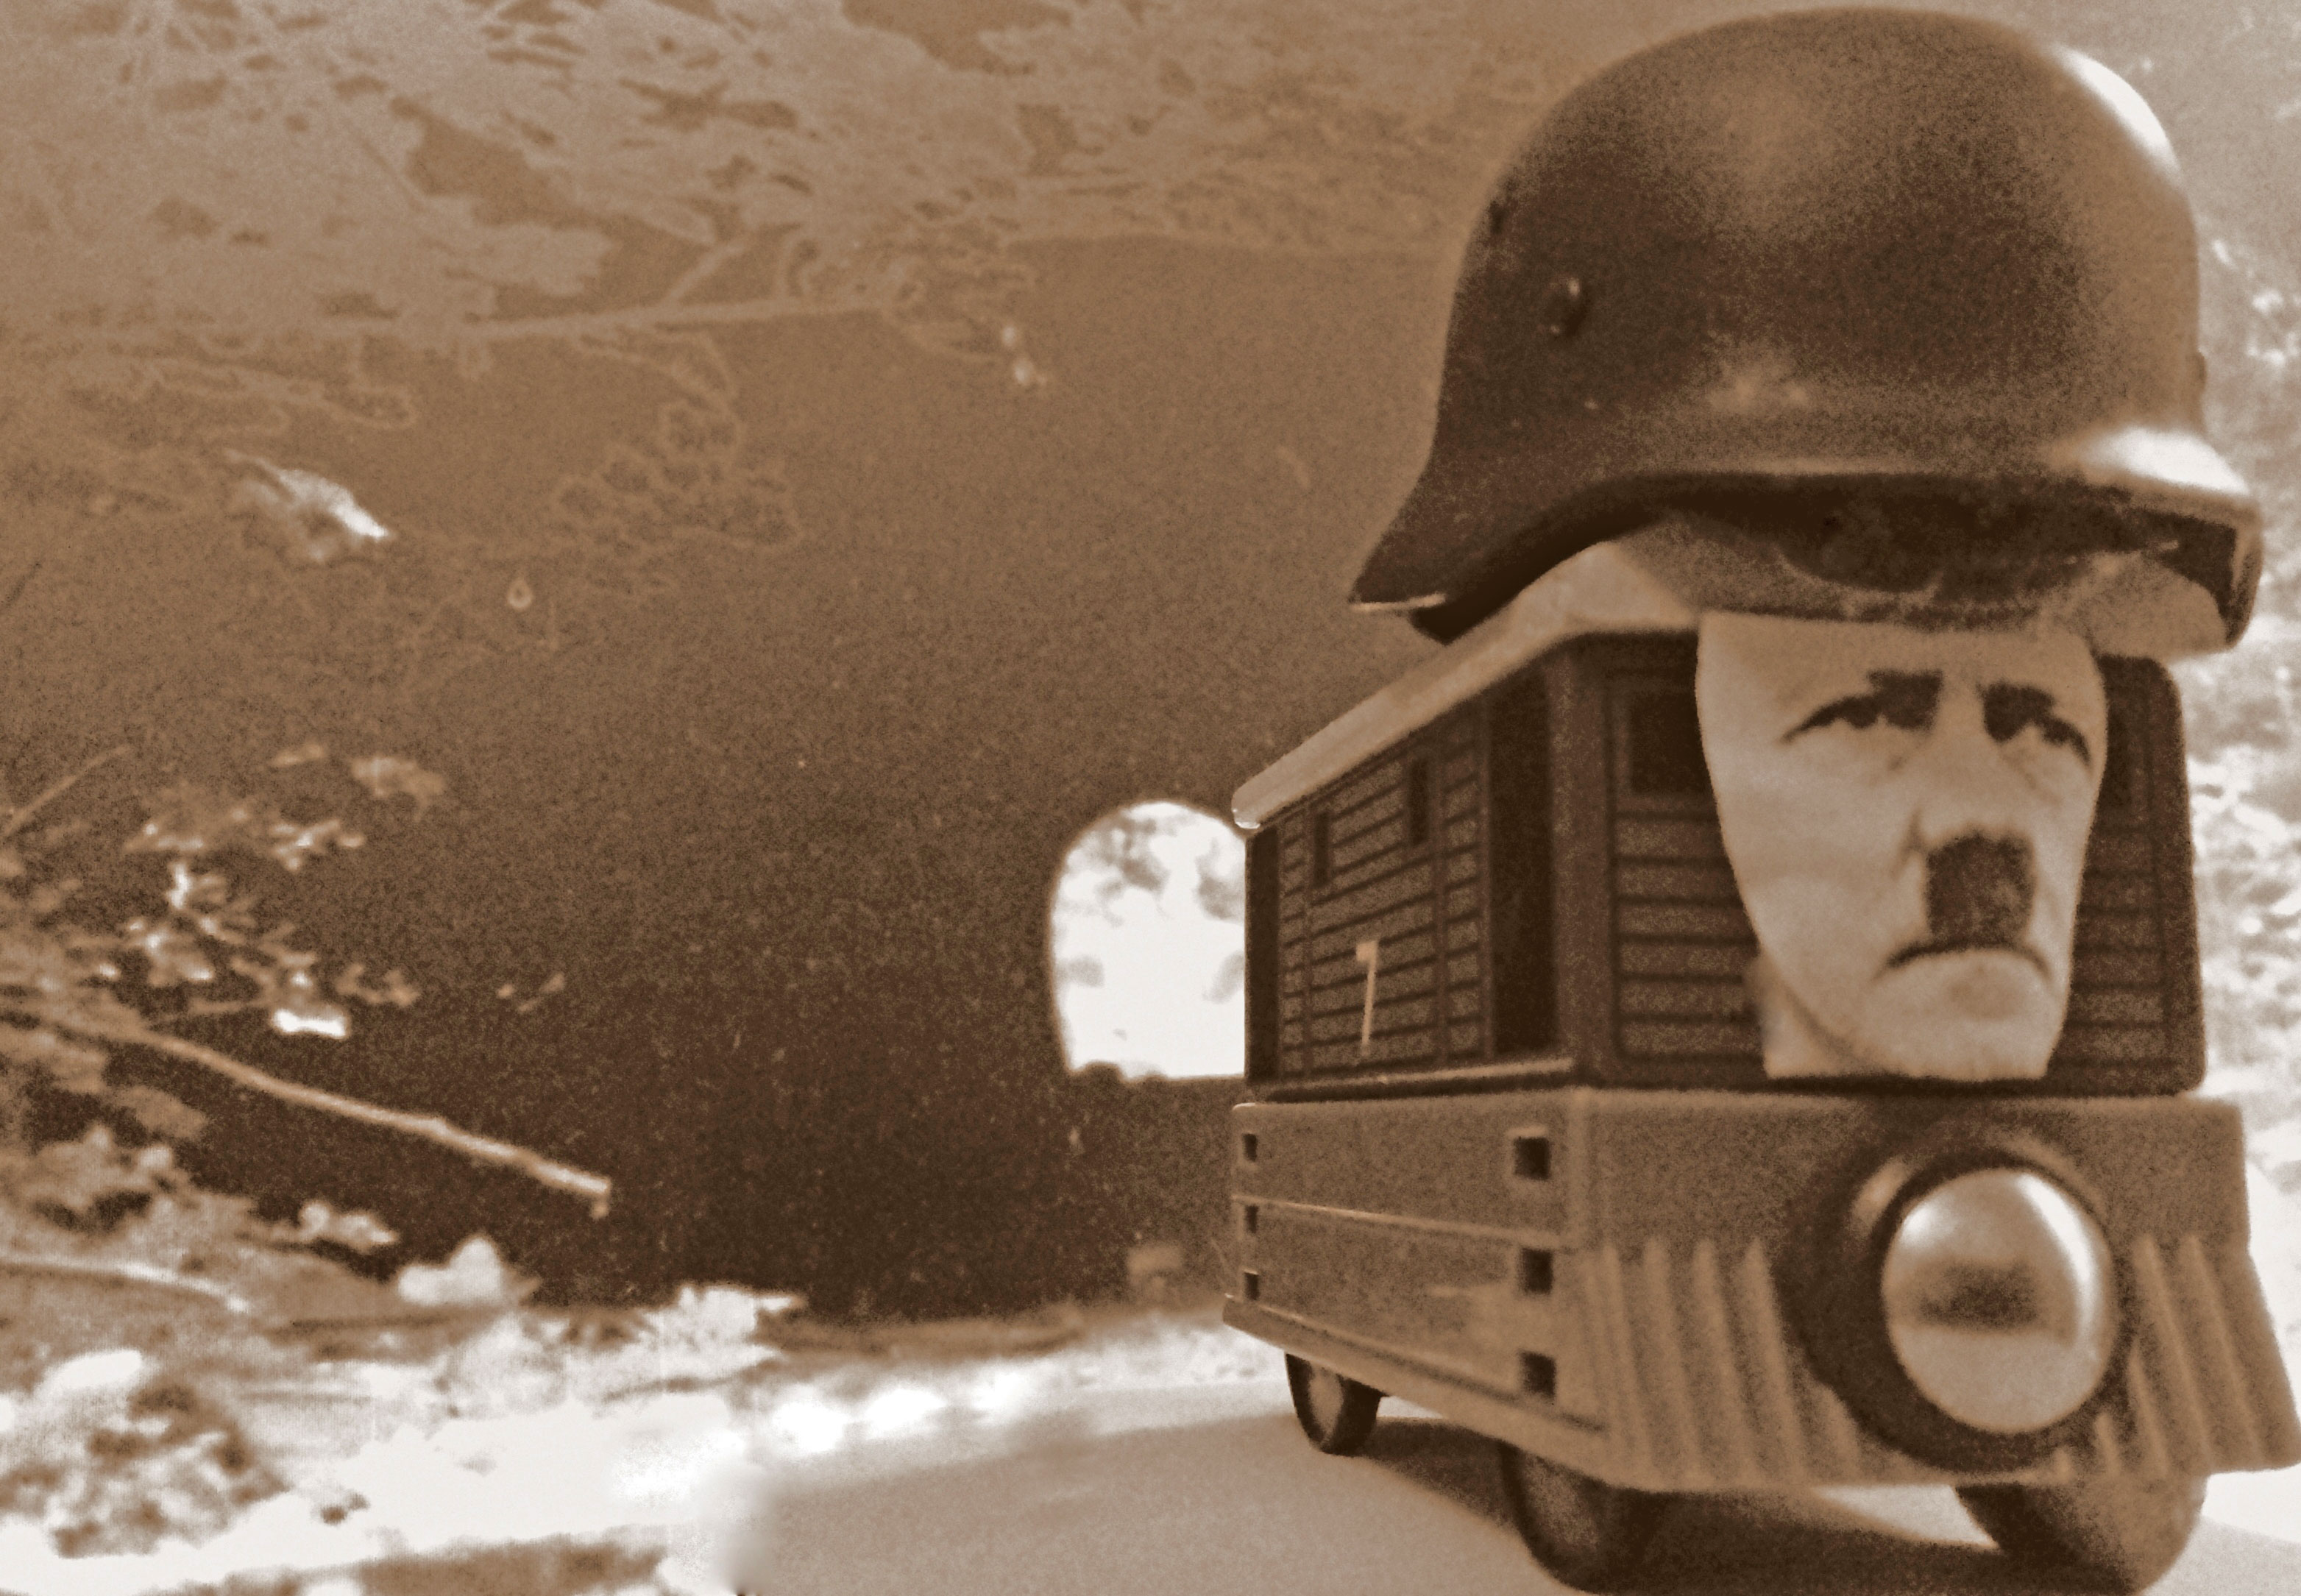 The legend of the golden train of the Third Reich